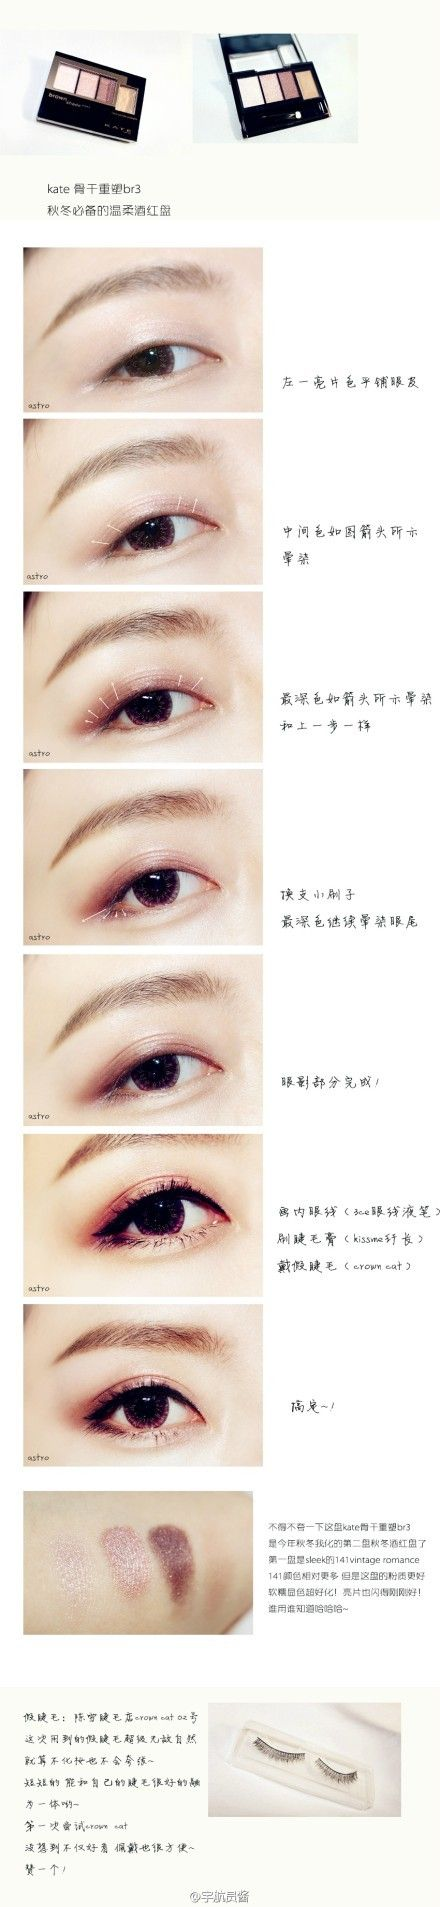 Chinese make up